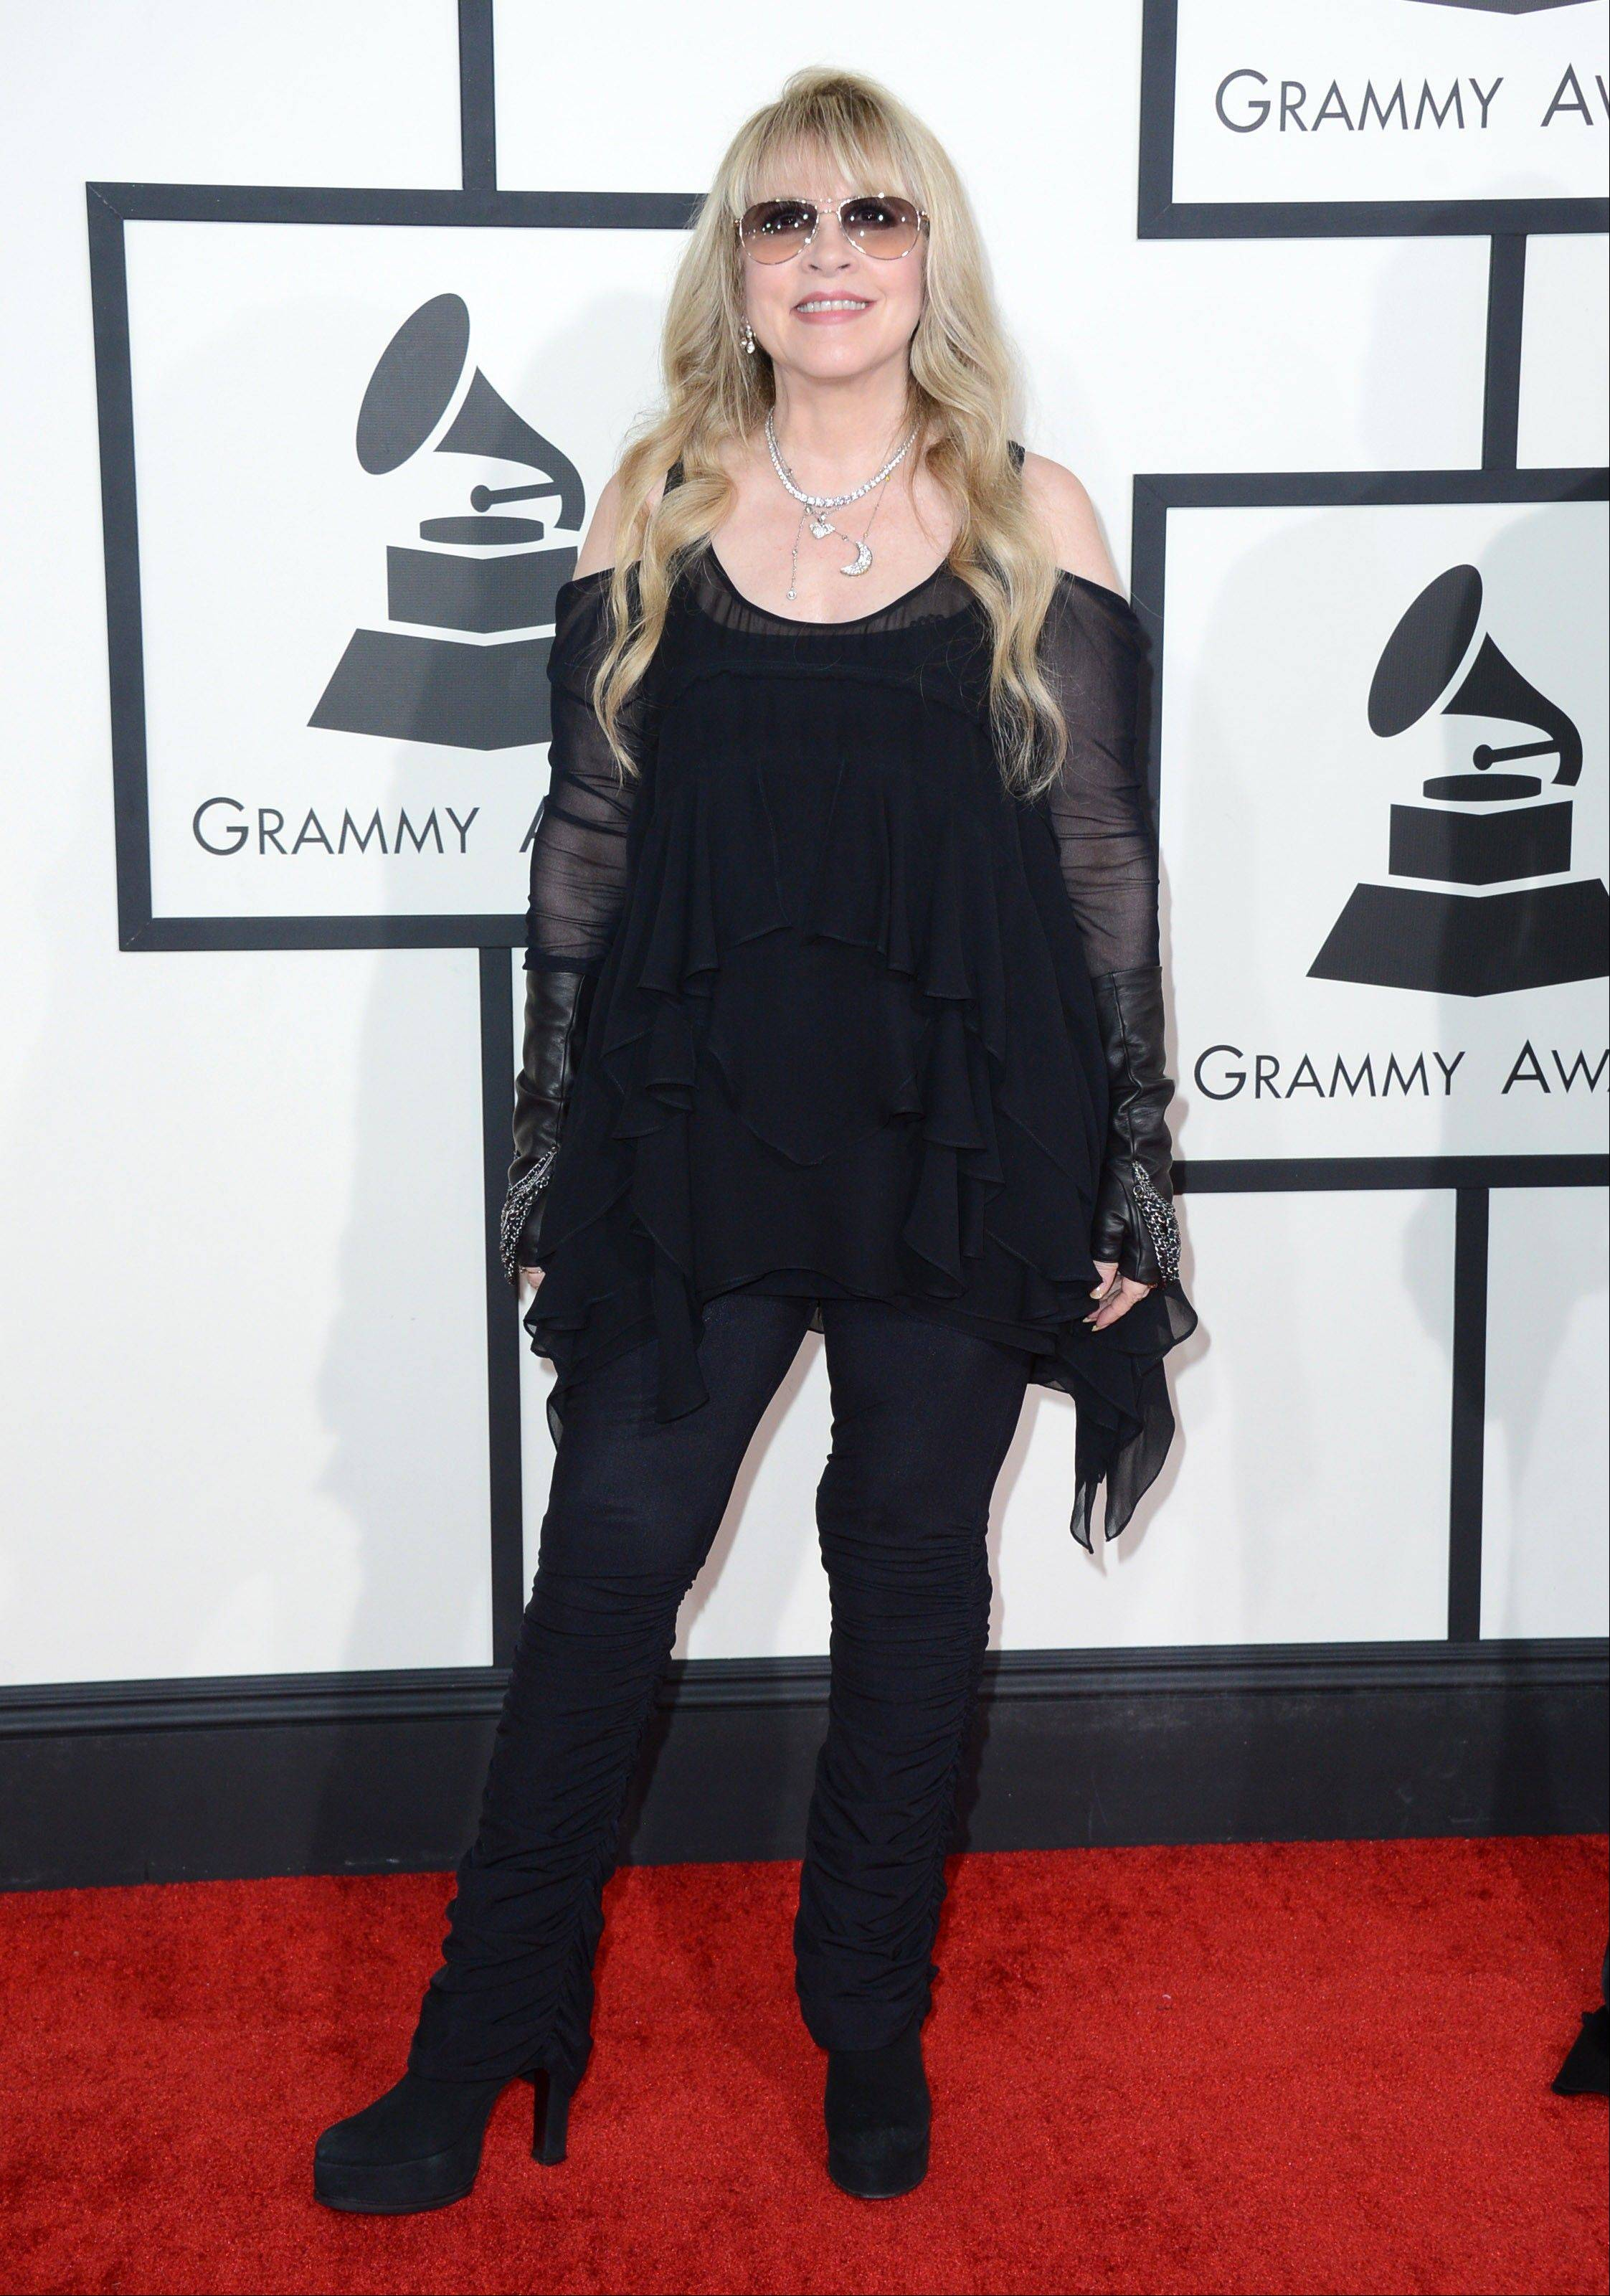 Stevie Nicks arrives at the 56th annual Grammy Awards at Staples Center on Sunday.